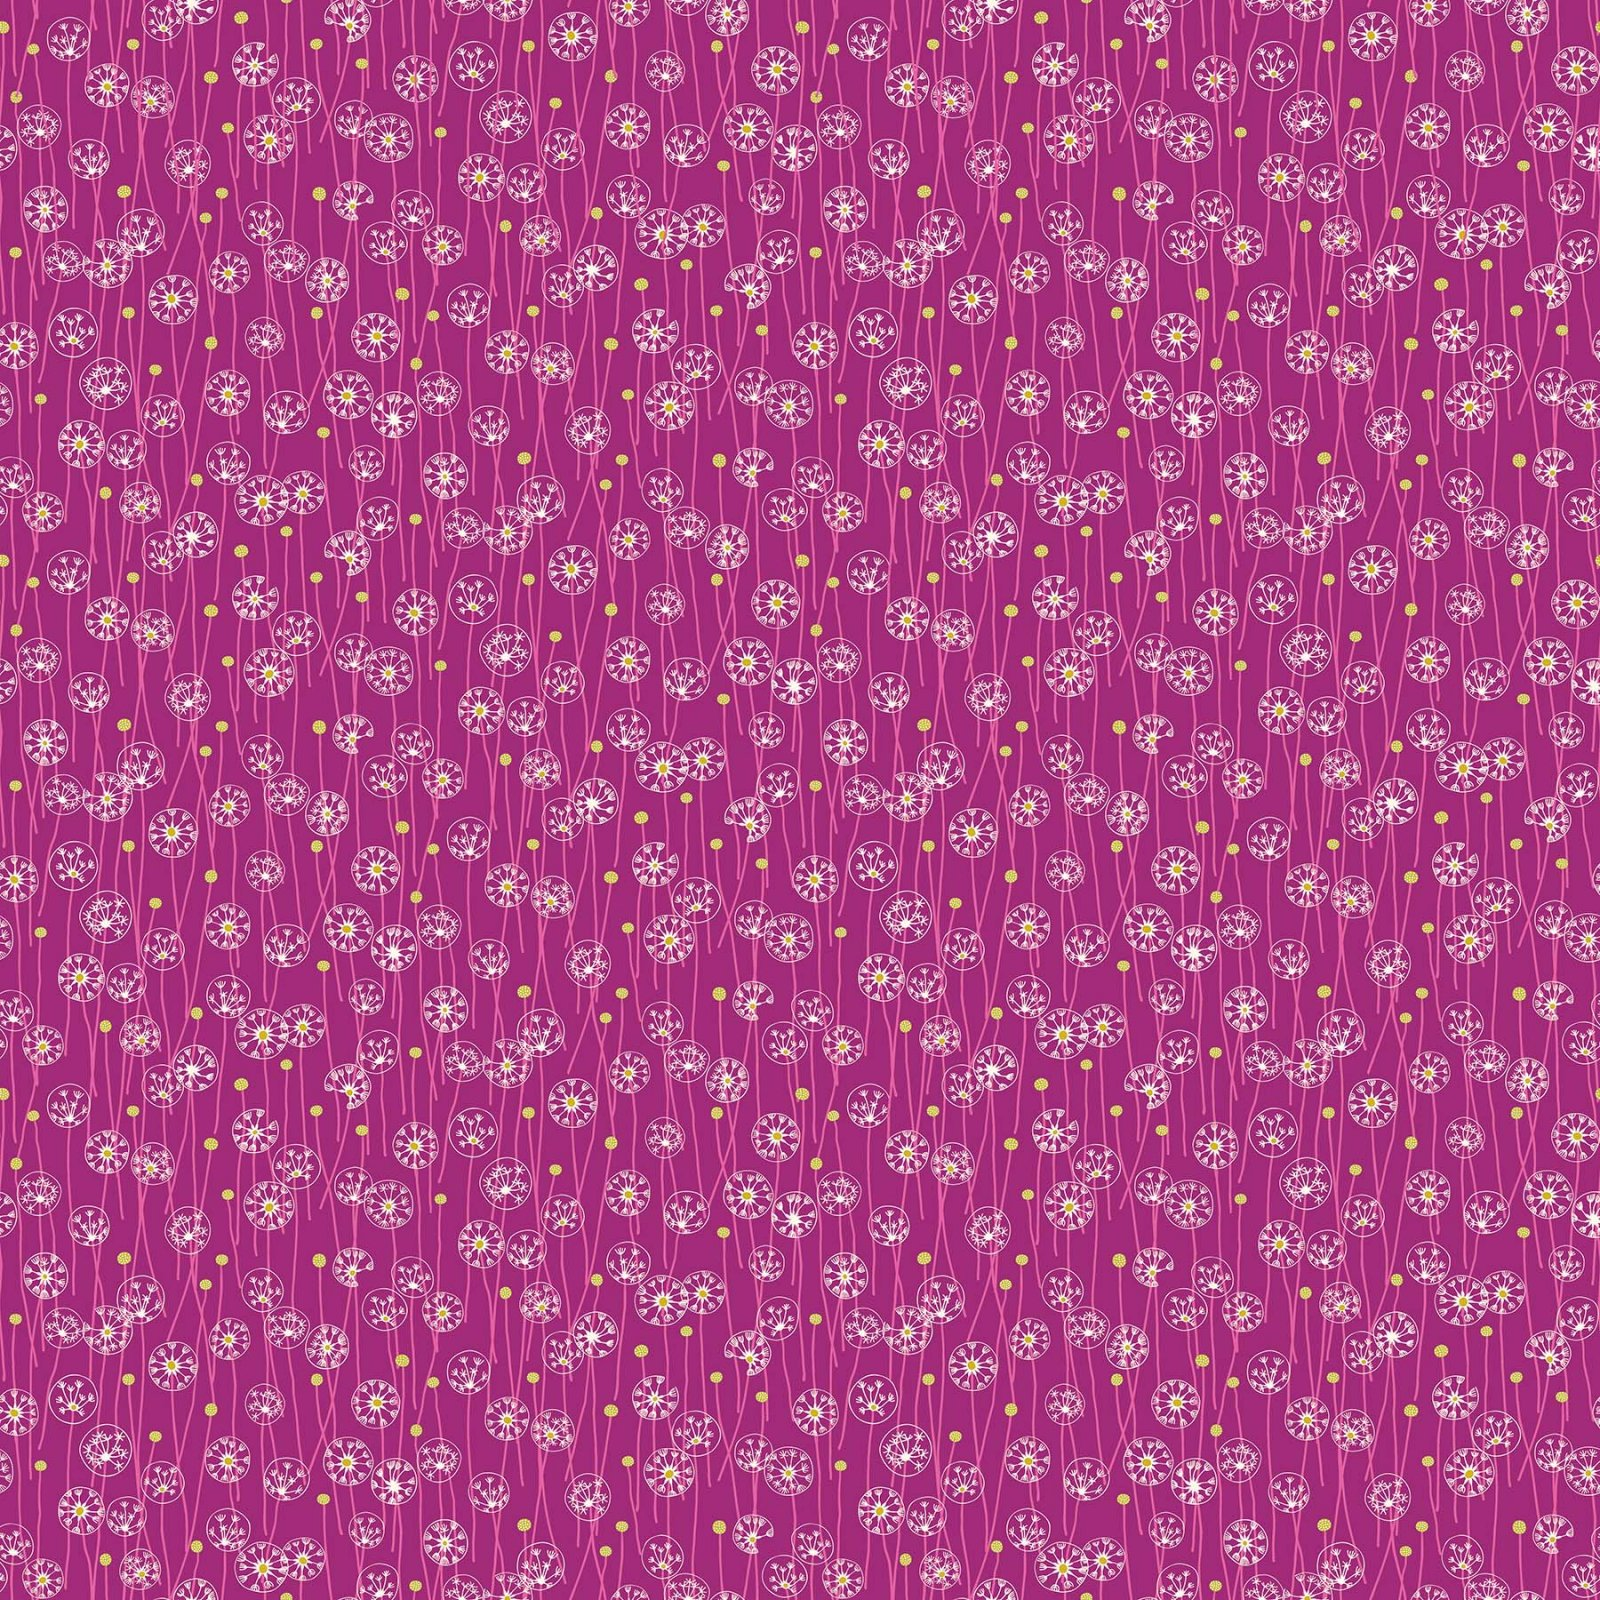 FIGO Fabrics - Mountain Meadows - Dandelions on Pink  - 90001-83